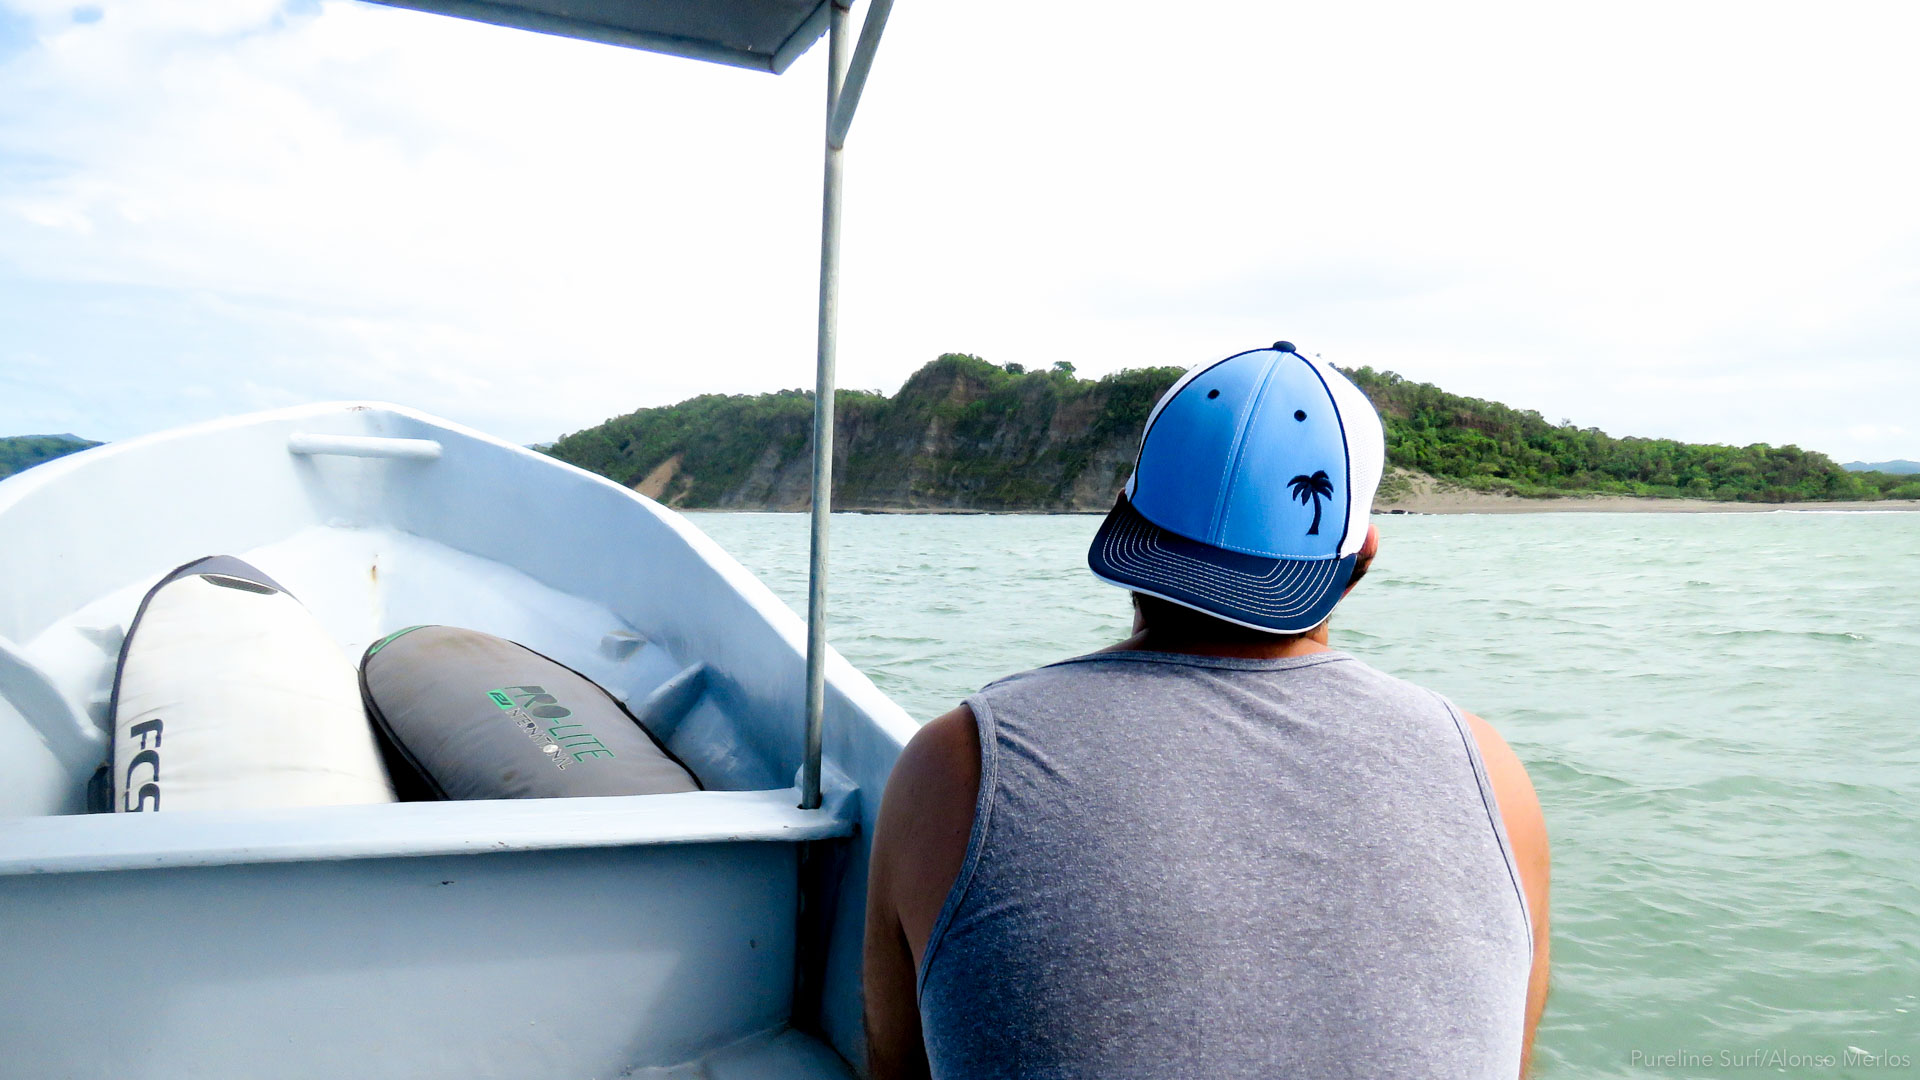 A pureline surf client looking out over the ocean from a boat filled with surf boards during a Pureline Surf Trip.